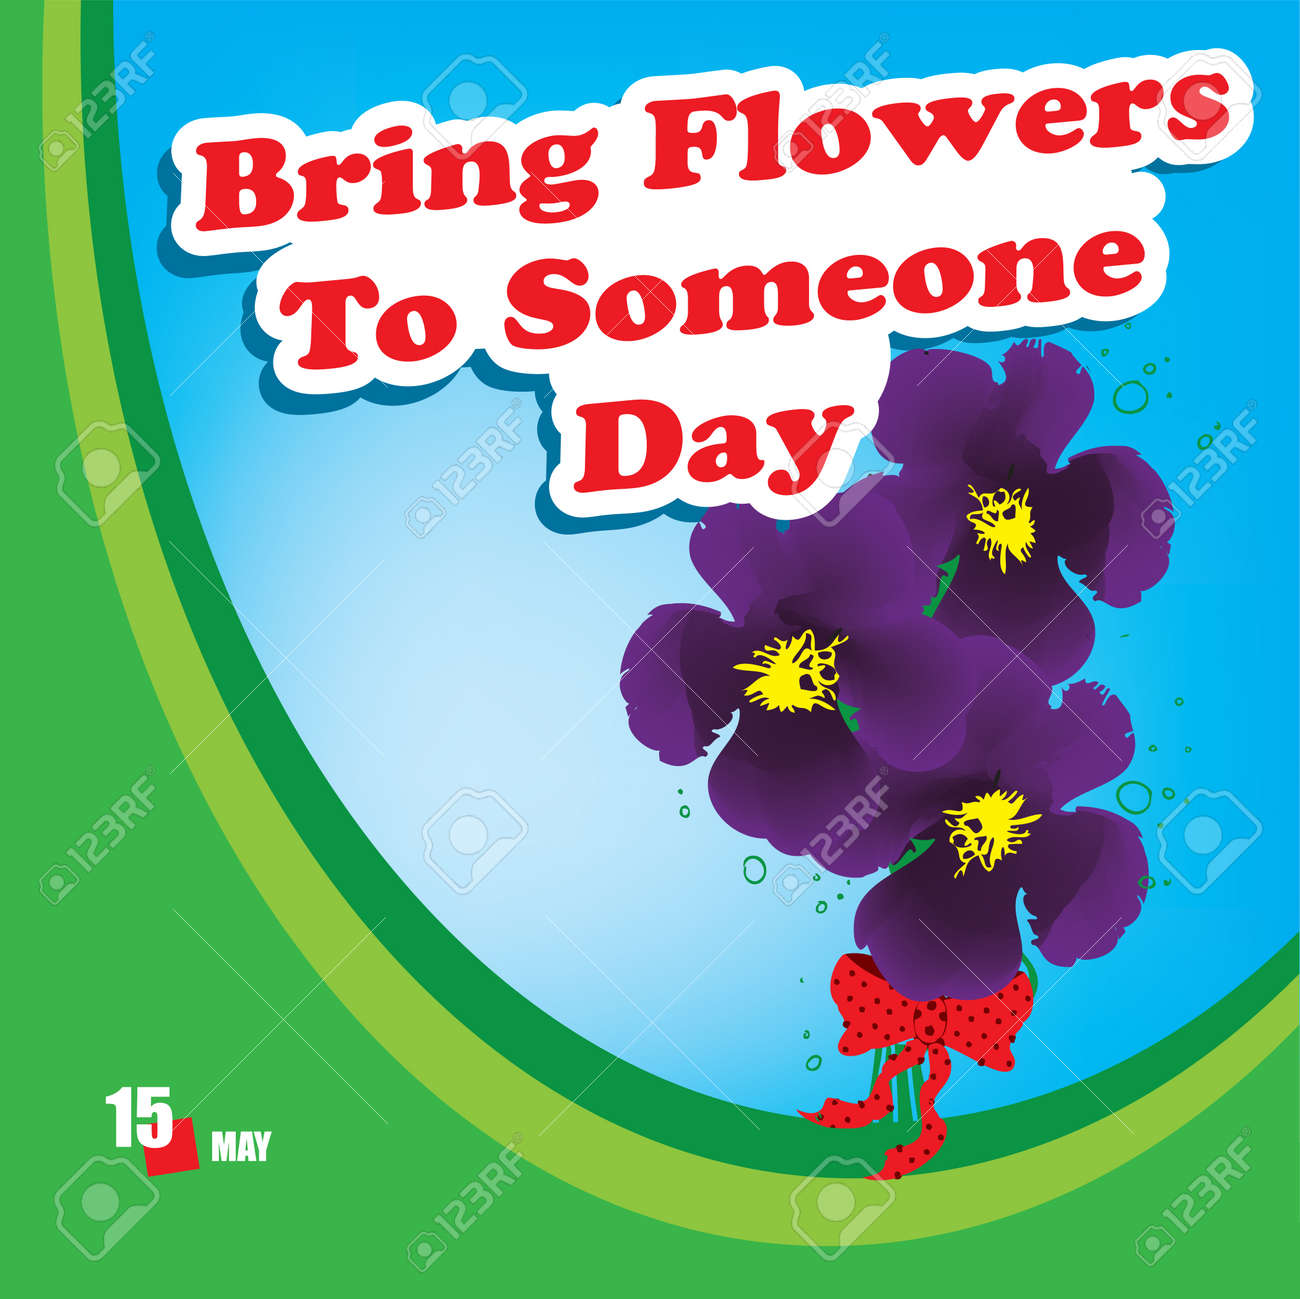 A festive event celebrated in May - Bring Flowers To Someone Day - 169061380